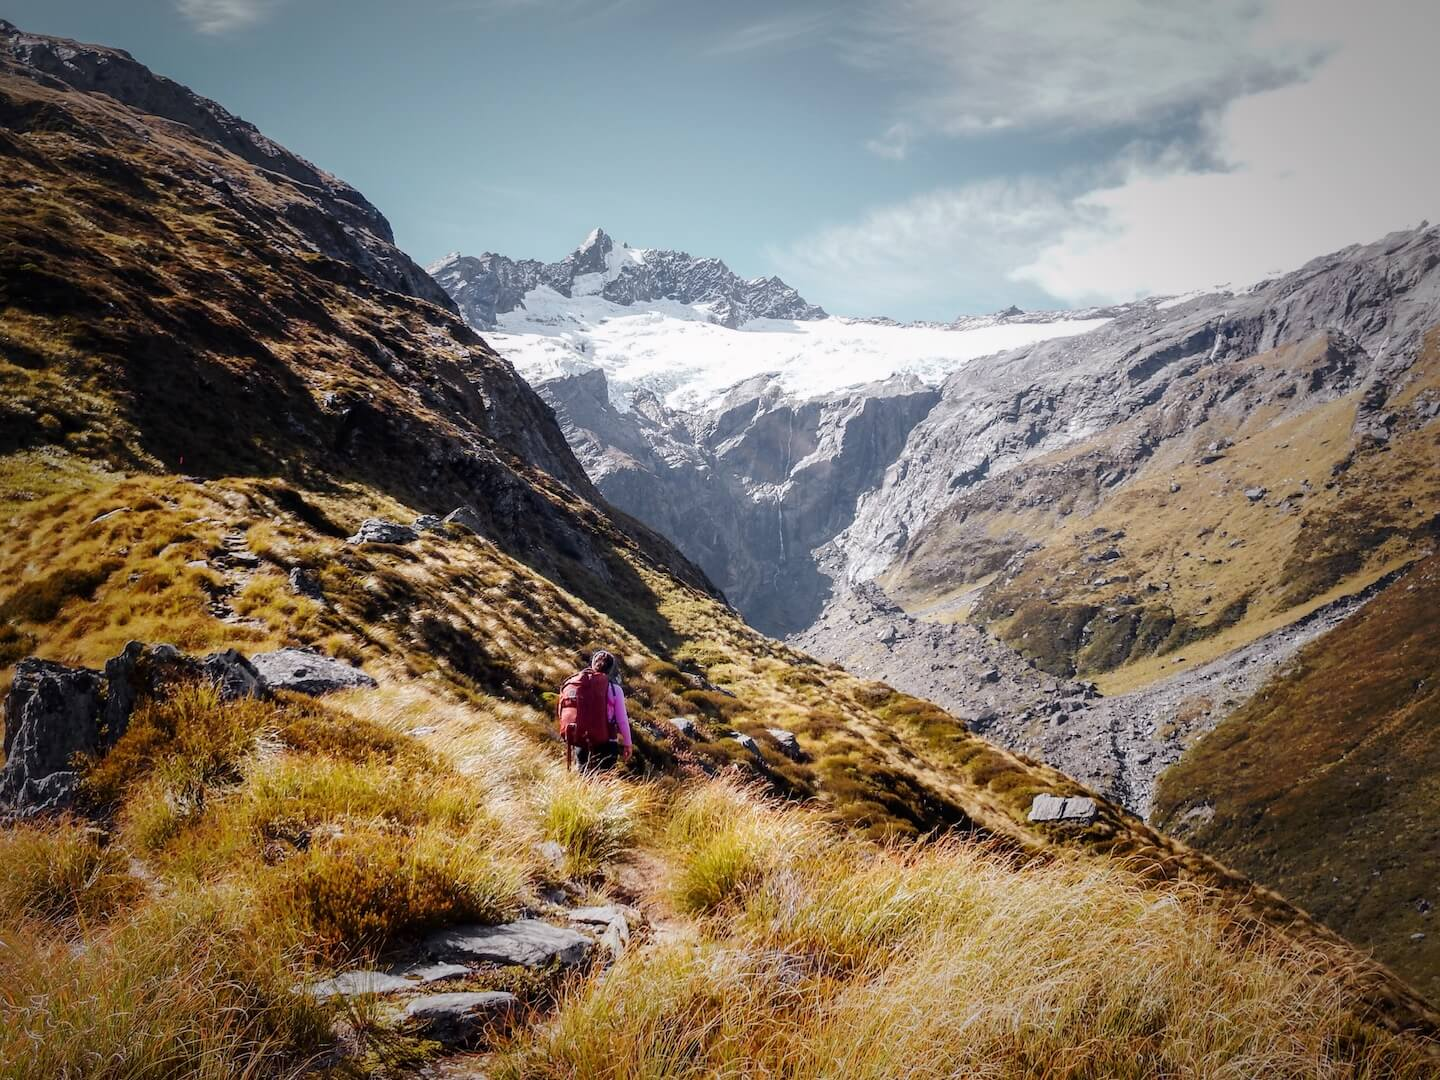 New Zealand Best Hikes - Mount Aspiring National Park, French Ridge Hut Hike